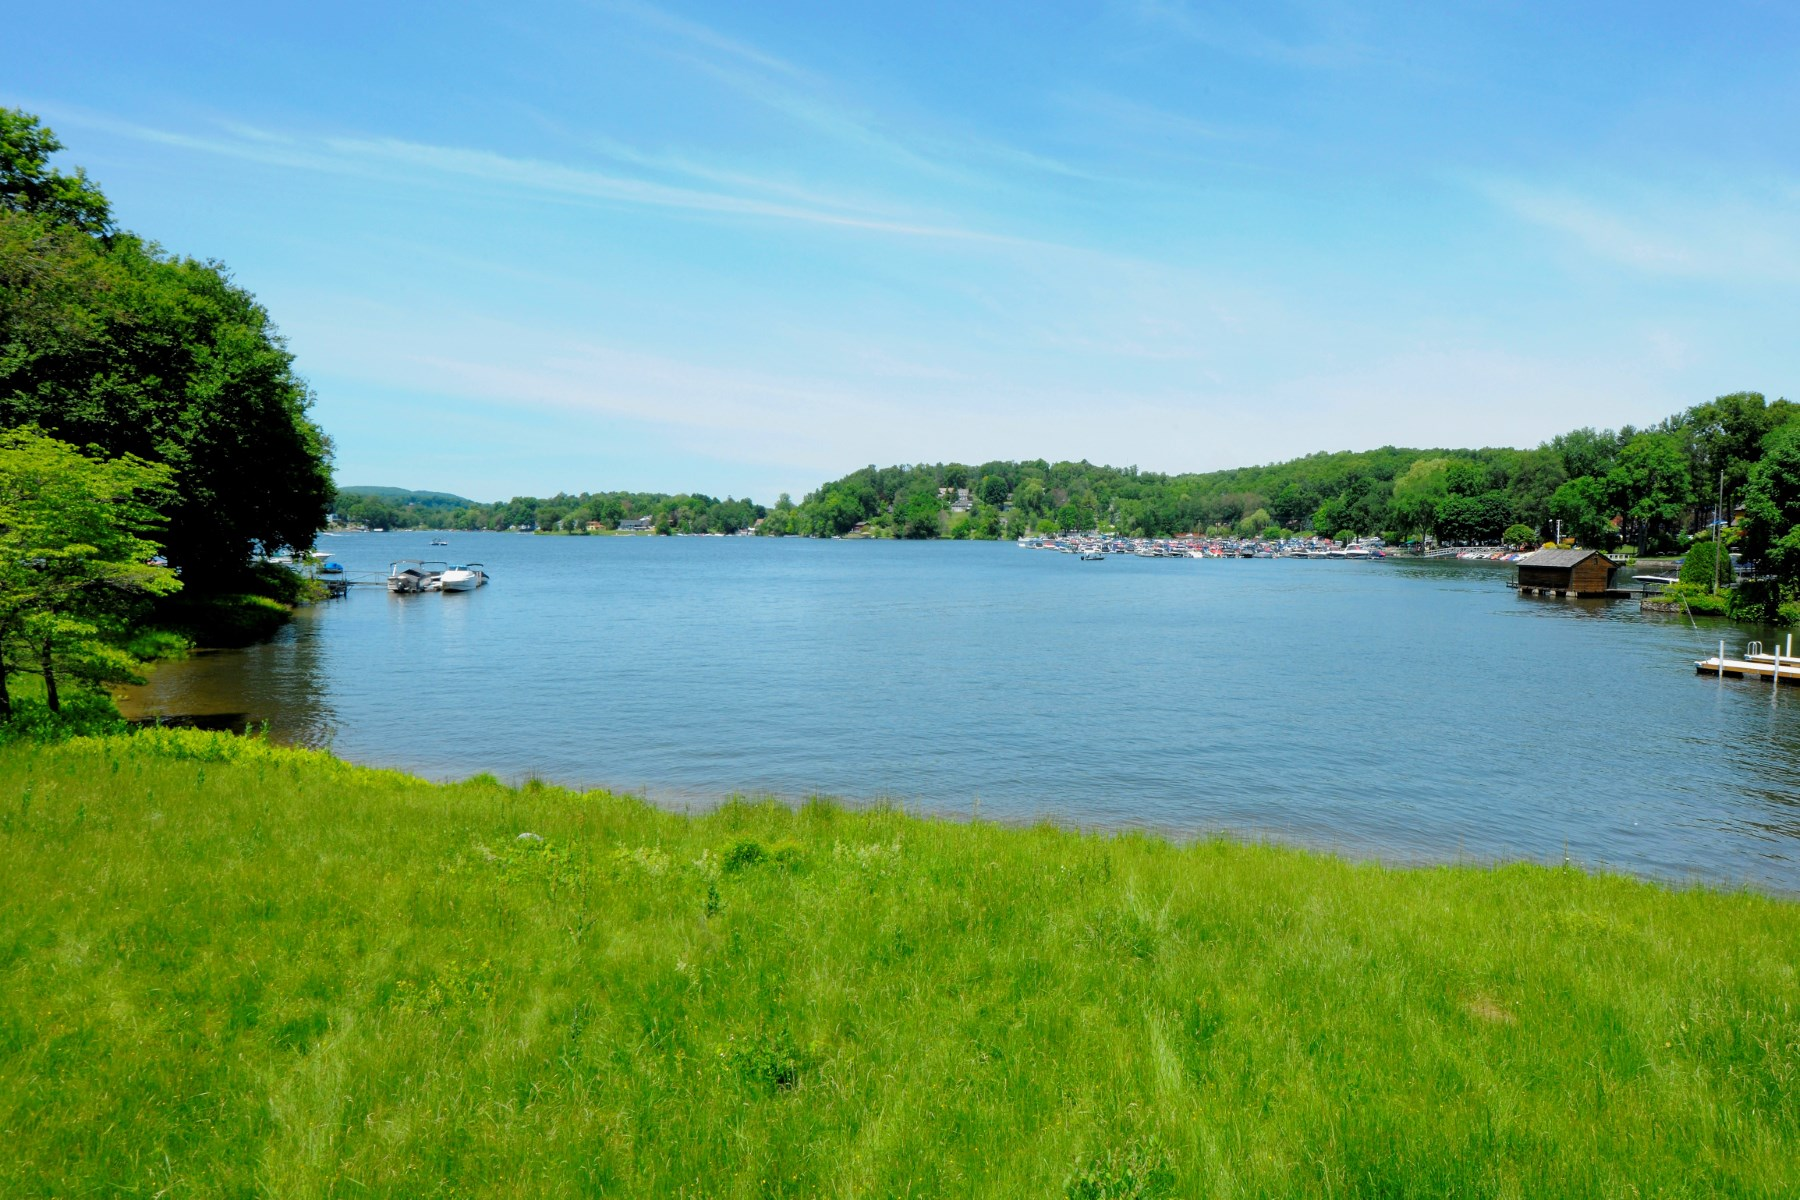 Terreno per Vendita alle ore Candlewood Lake Life 174 Candlewood Lake Road Brookfield, Connecticut, 06804 Stati Uniti